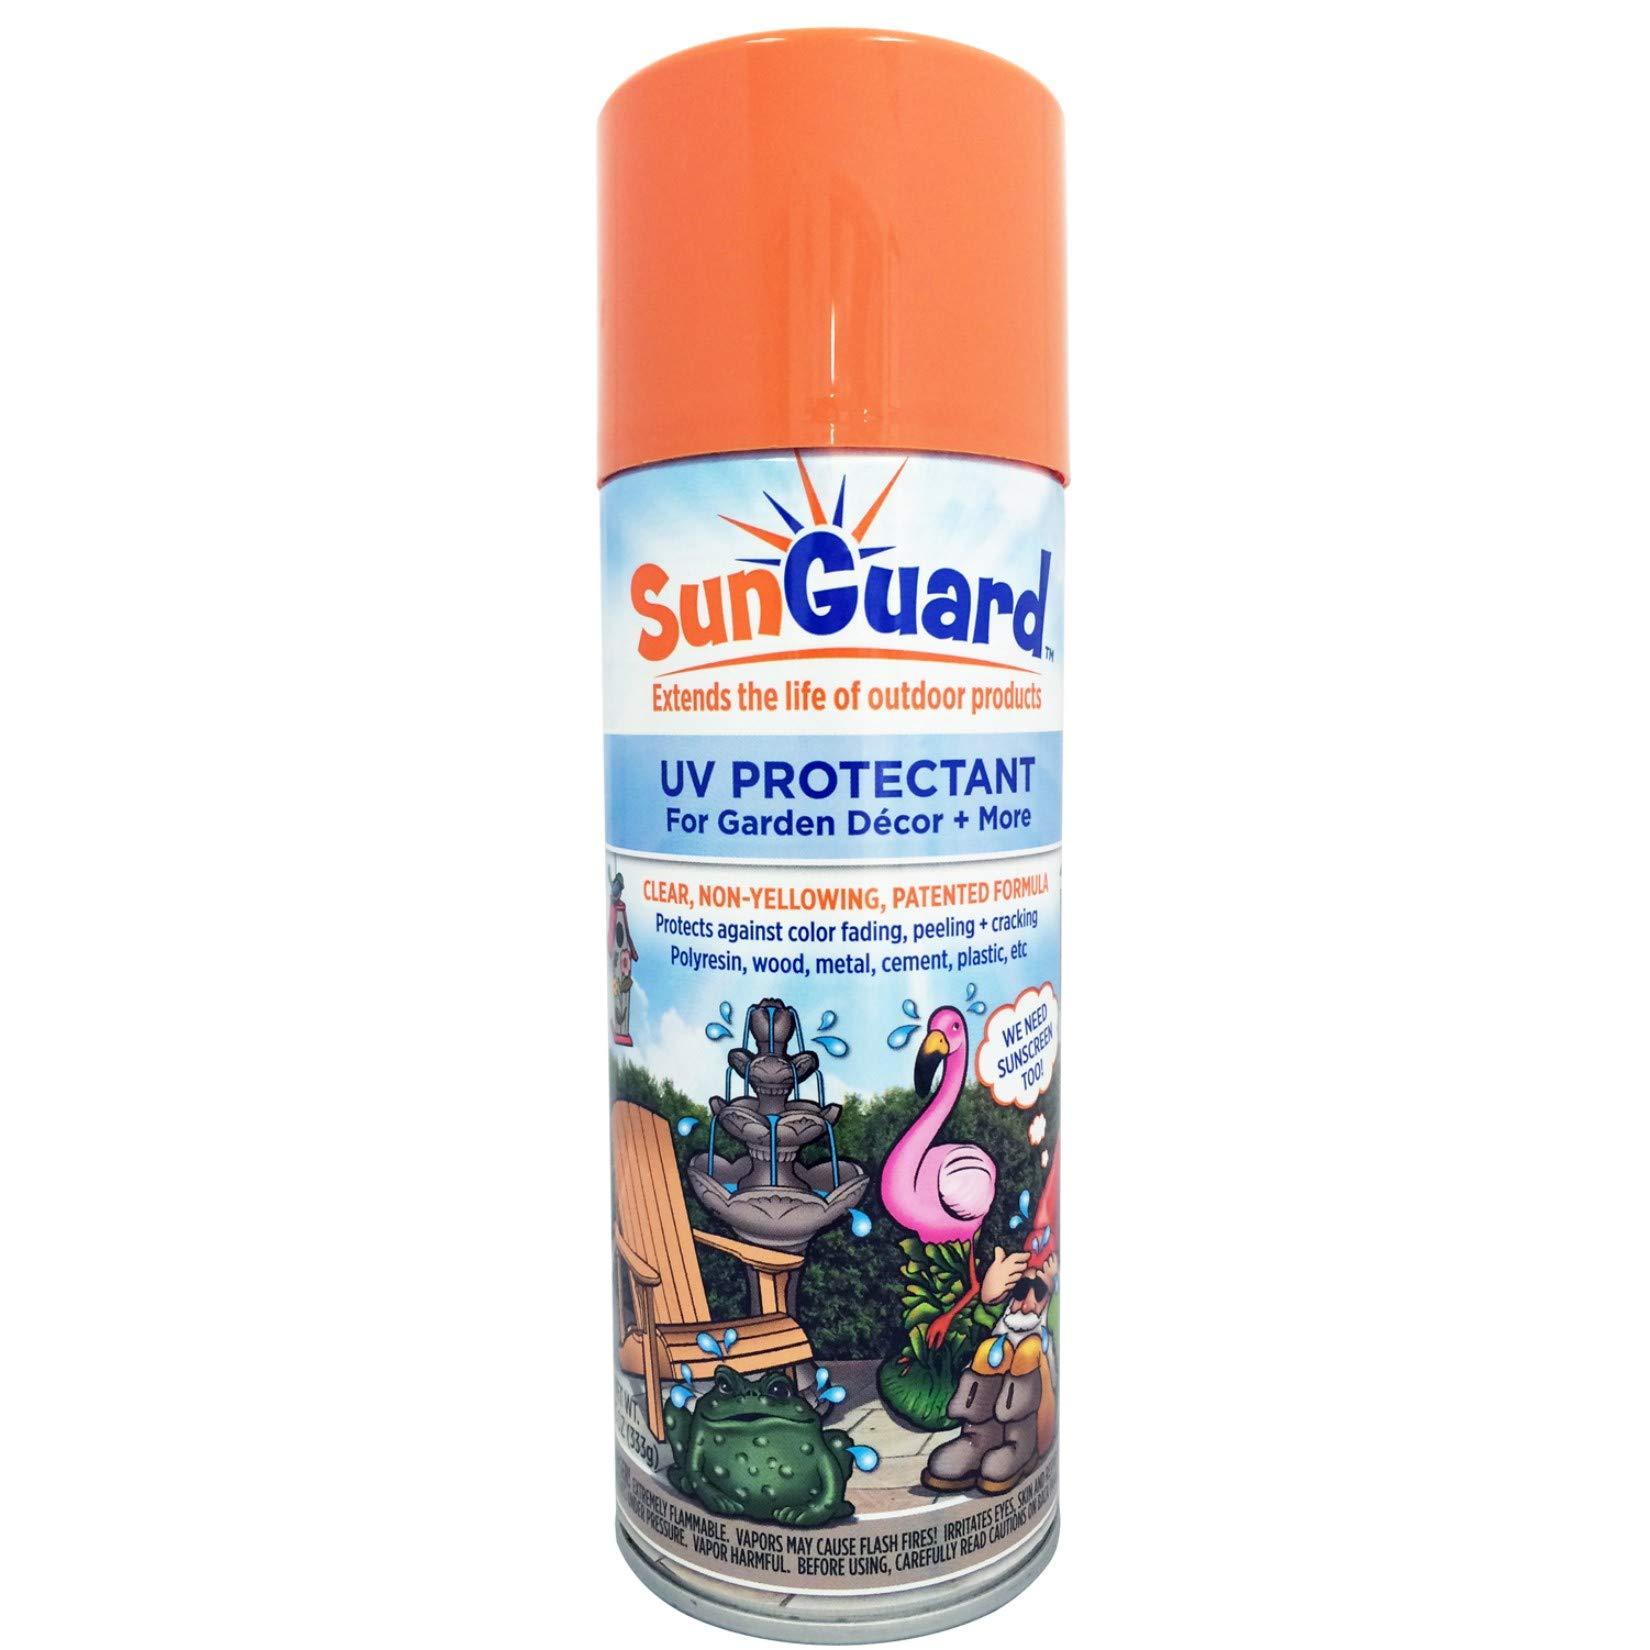 SUNGUARD UV Protectant Spray for Outdoor Decor, Furniture & More to Prevent Fading, Peeling and Cracking by SUNGUARD